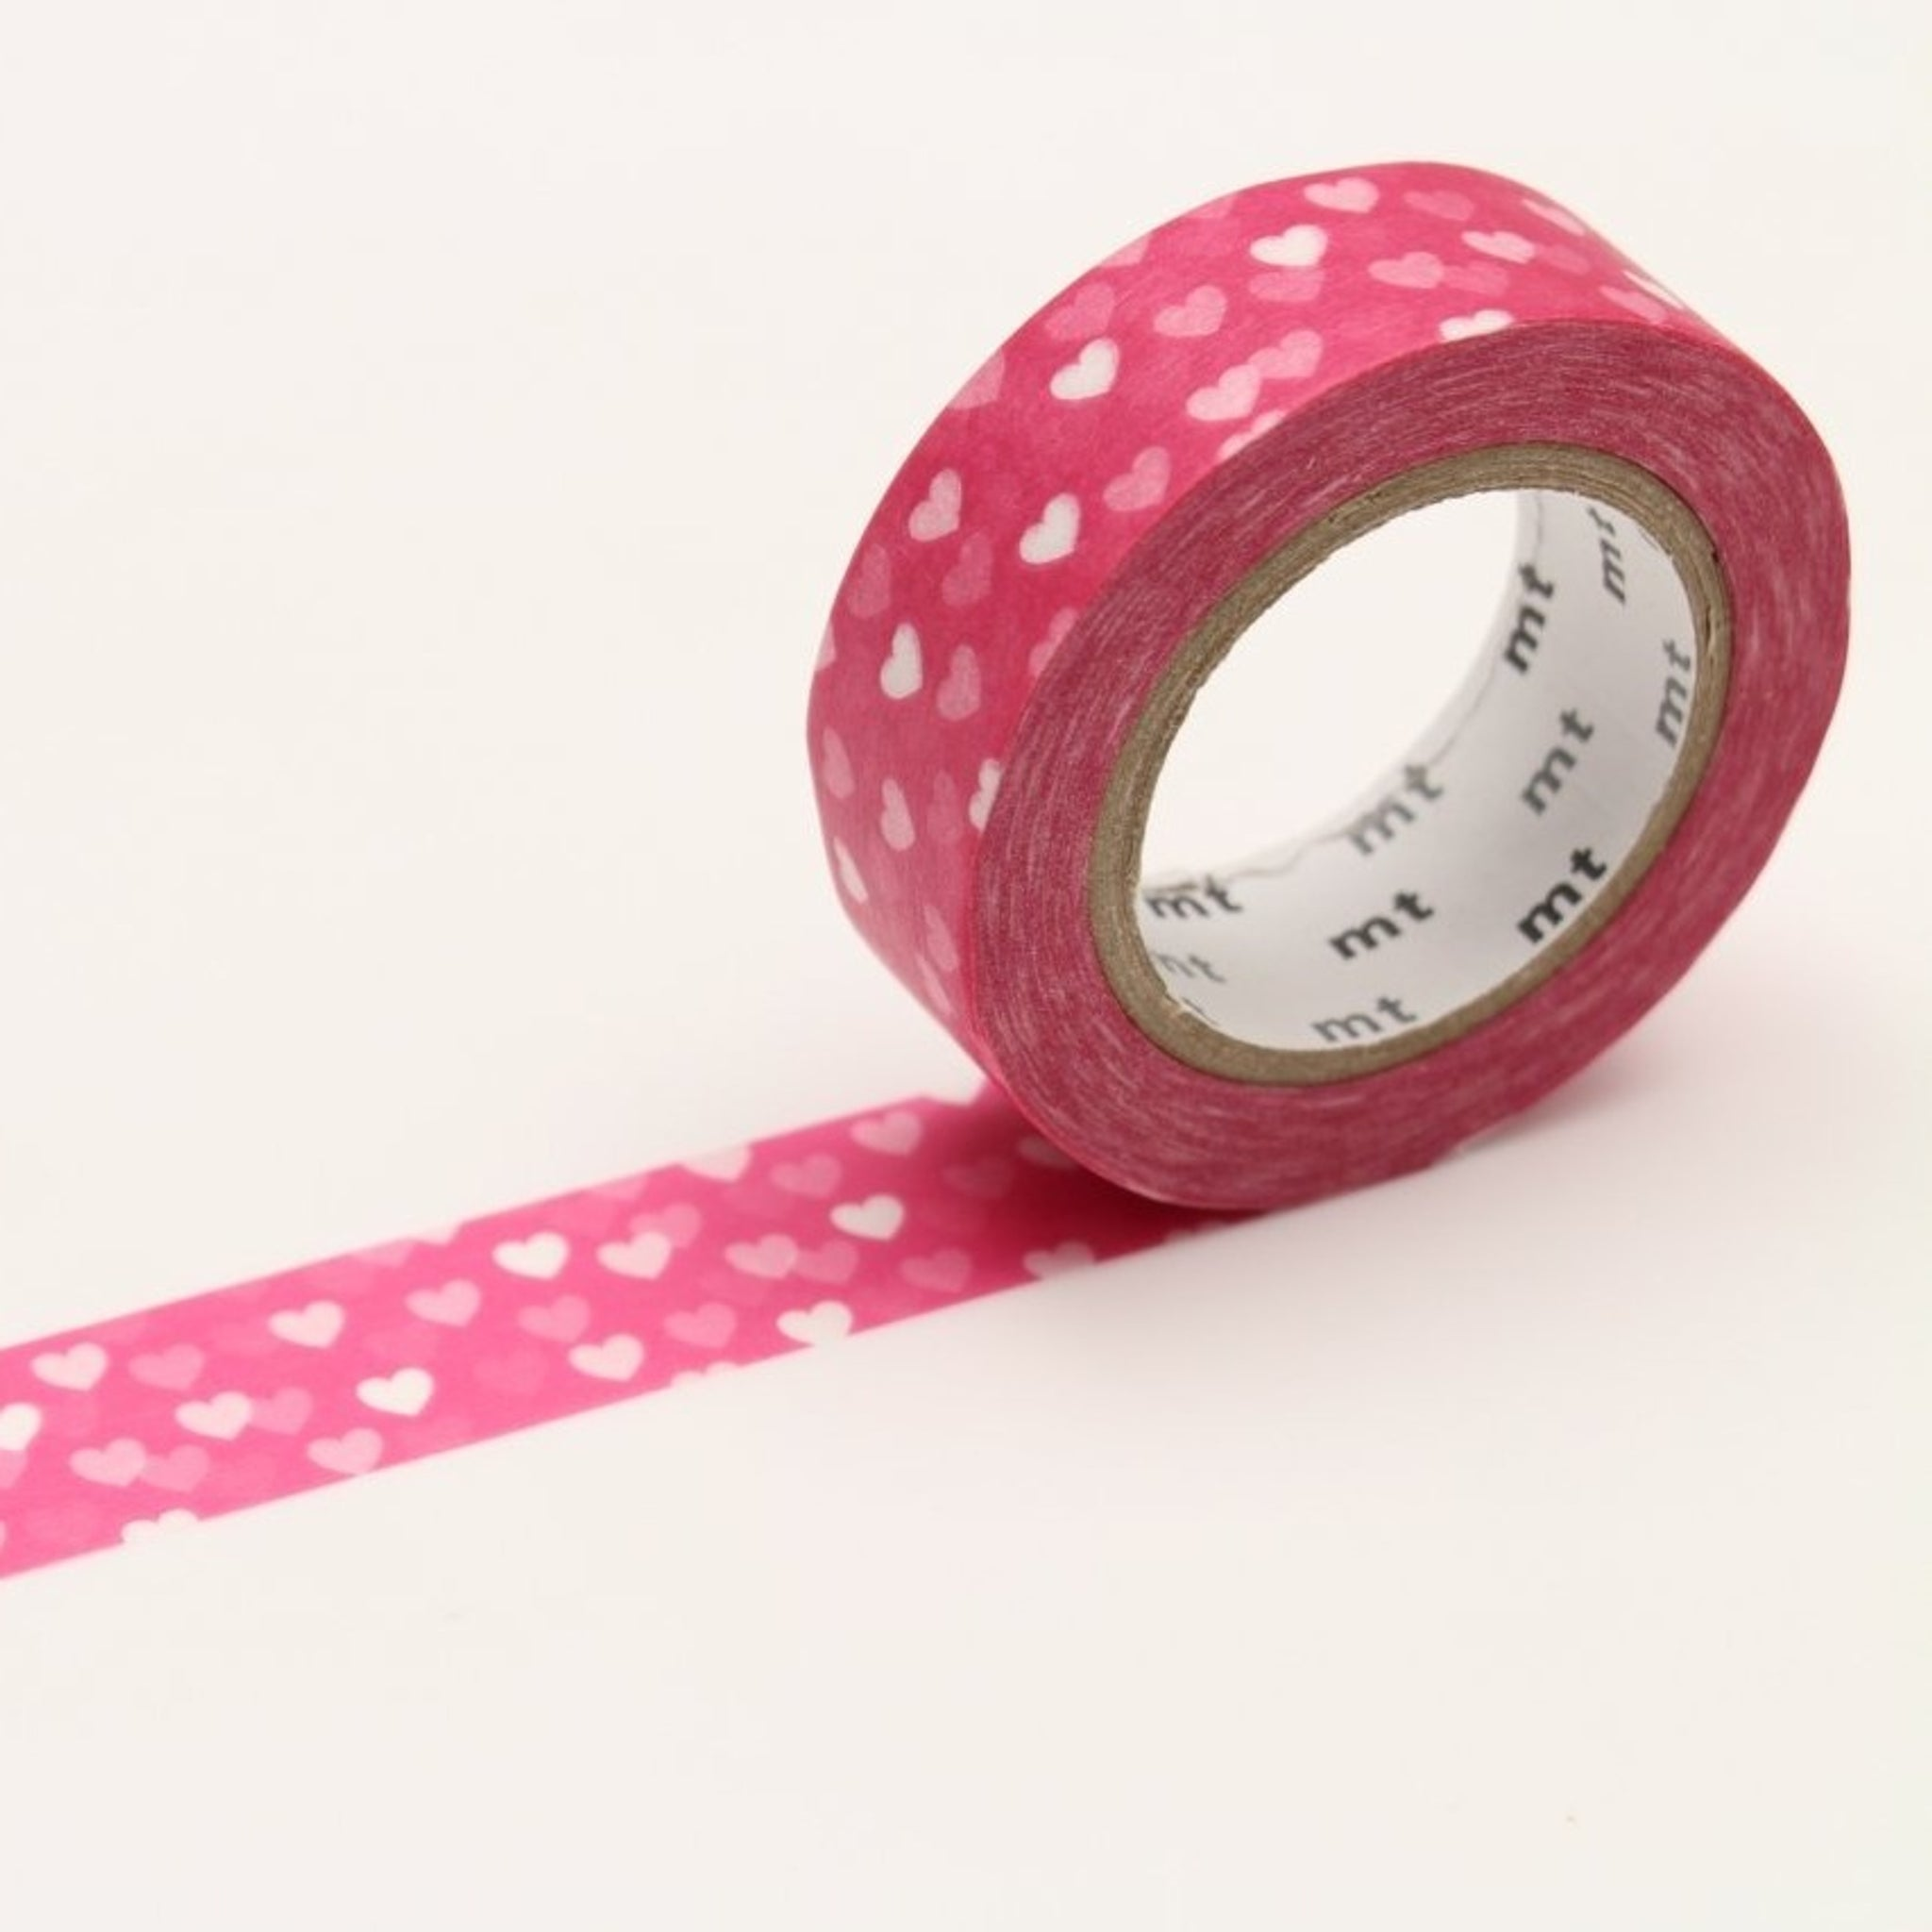 mt Heart Spot washi tape